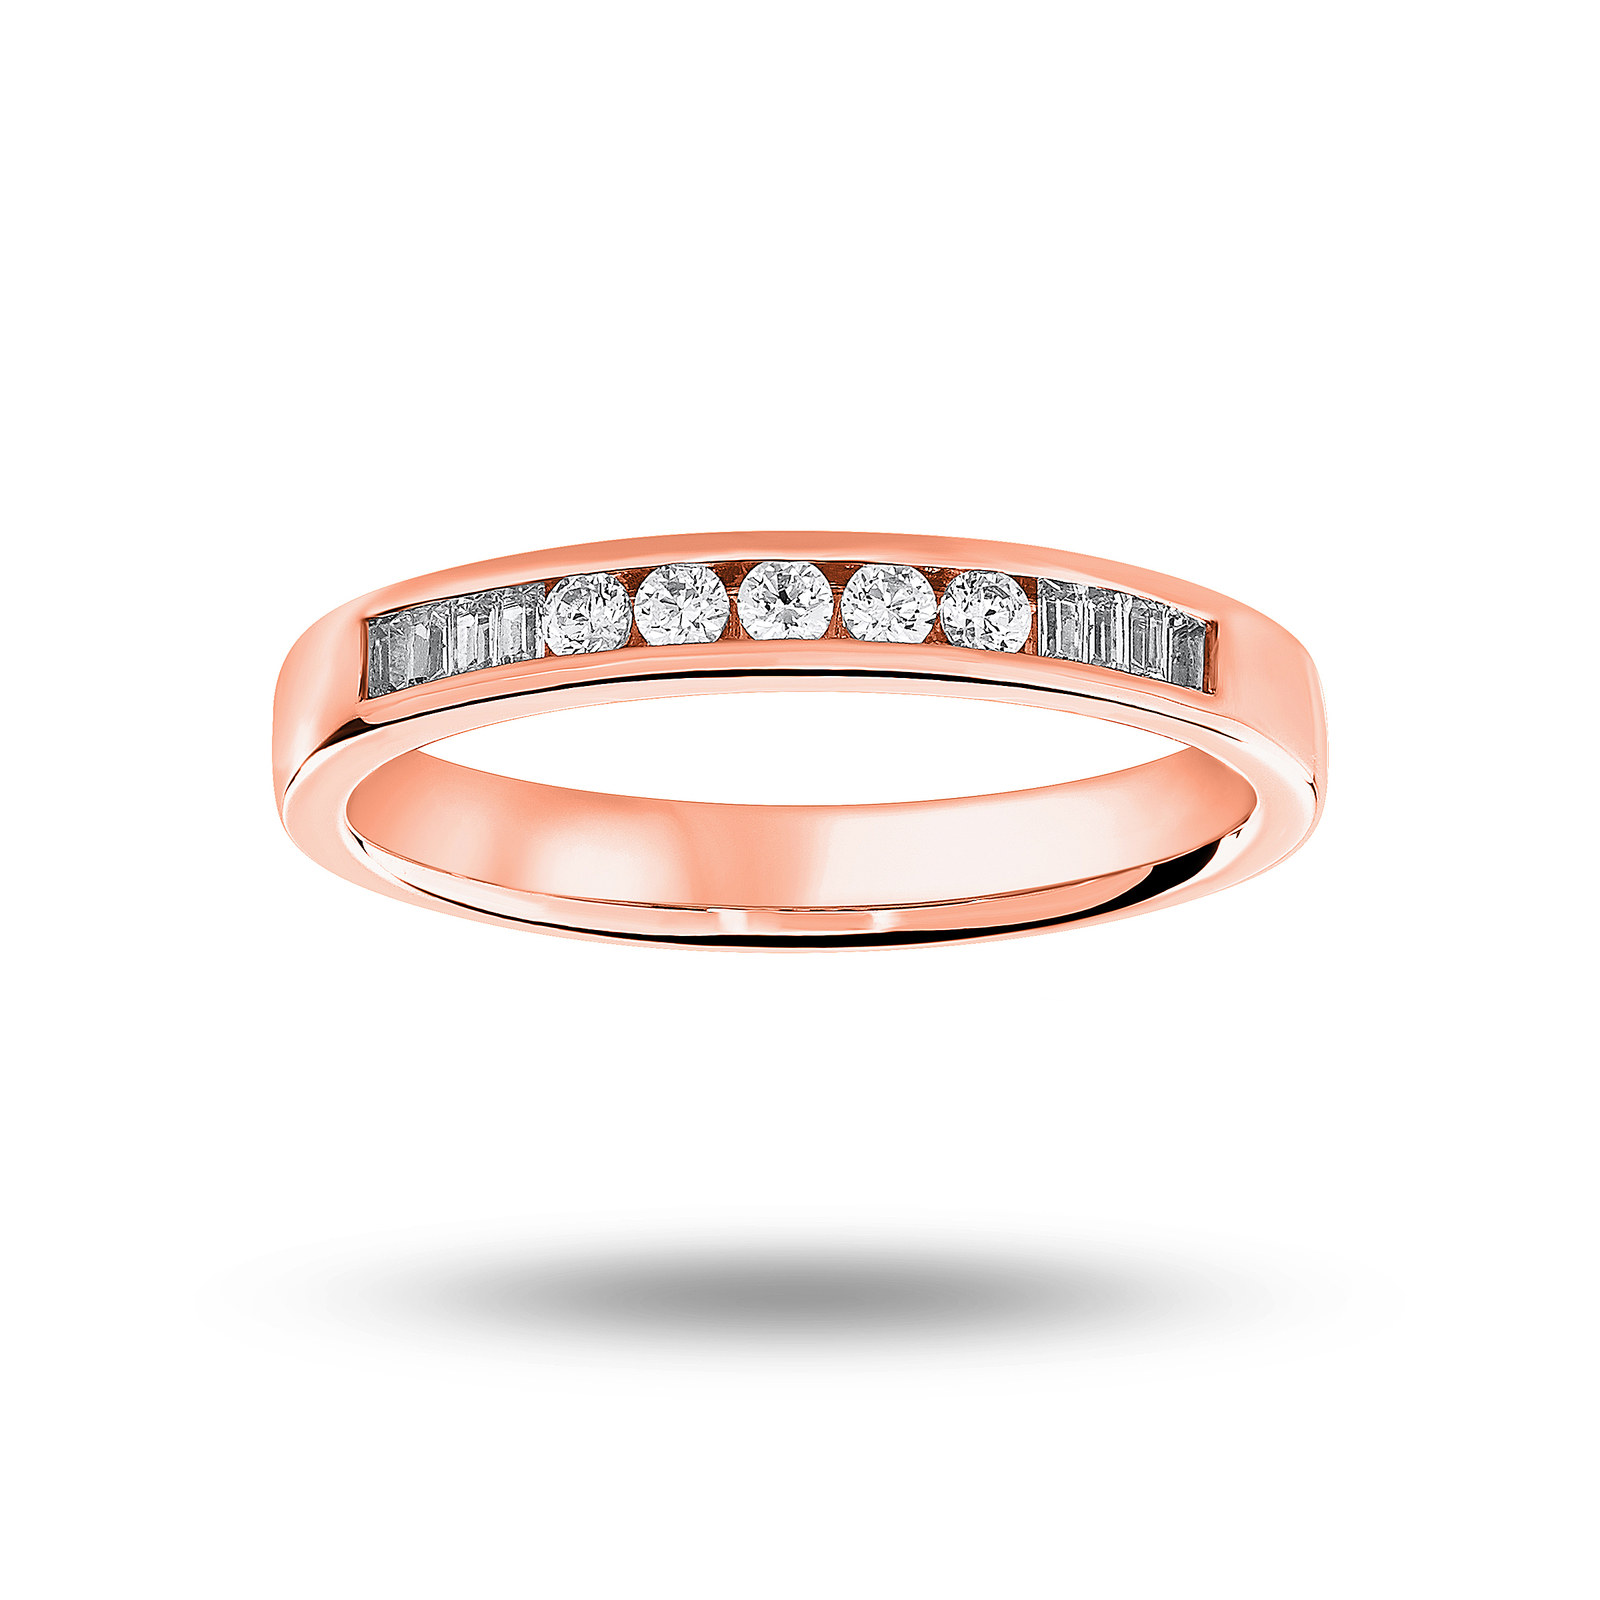 18 Carat Rose Gold 0.20 Carat Brilliant Cut and Baguette Channel Set Half Eternity Ring